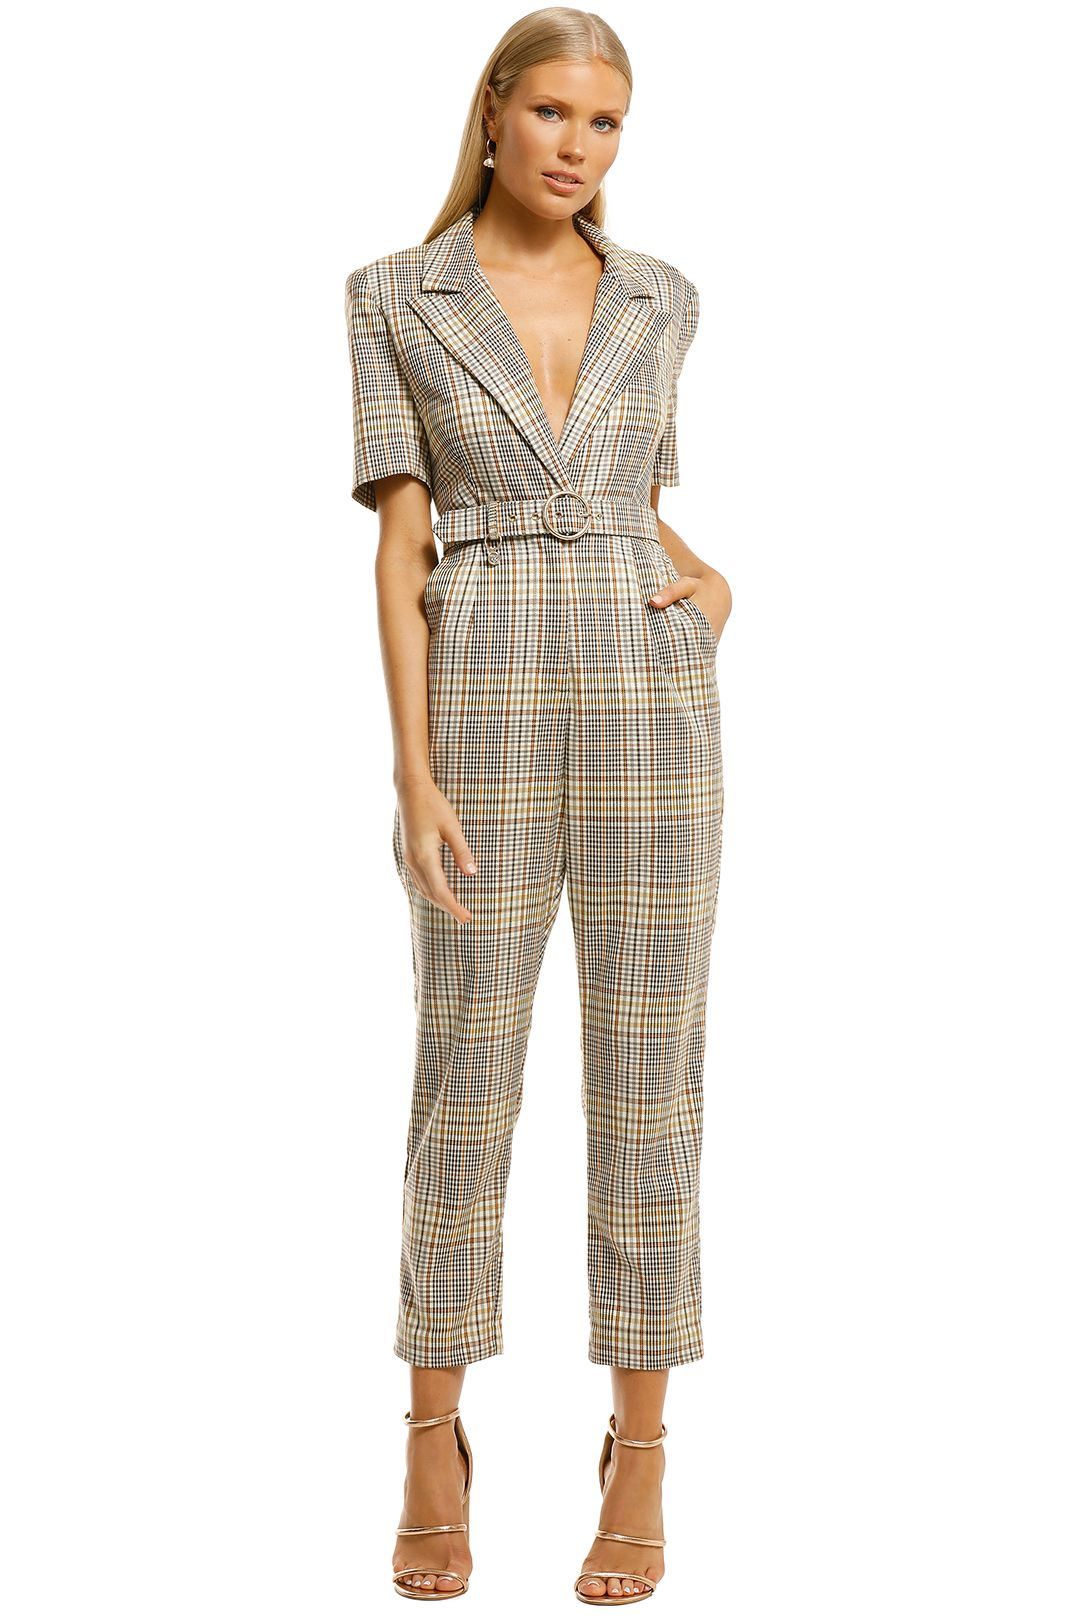 Pasduchas-Reflection-Pantsuit-Citrus-Front